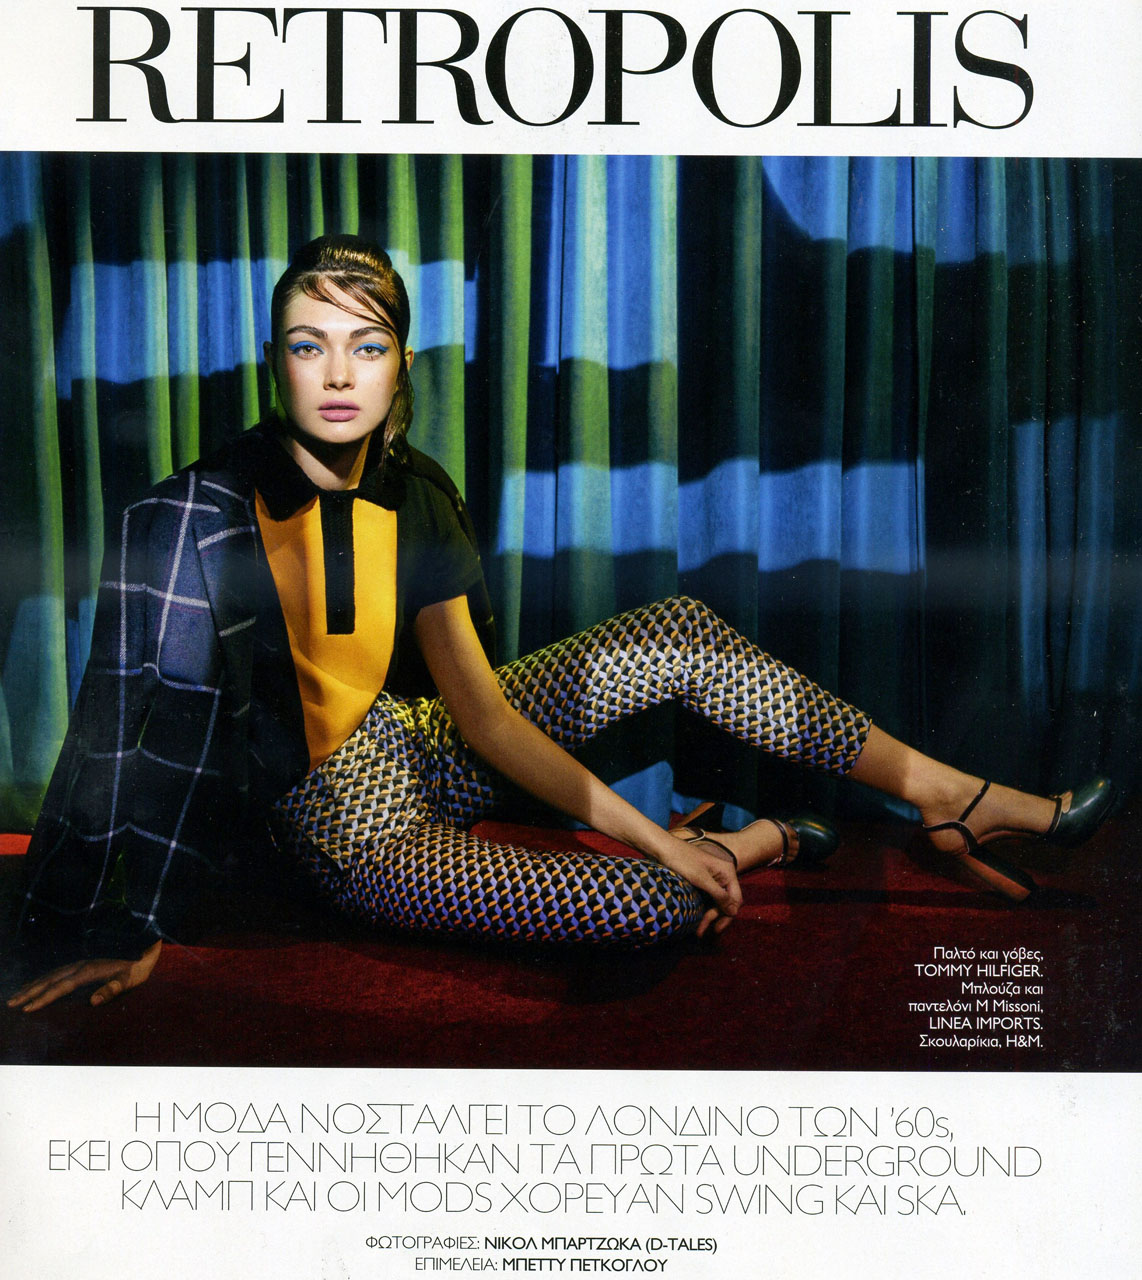 Antonina Vasylchenko is a citizen of Retropolis for Madame Figaro.